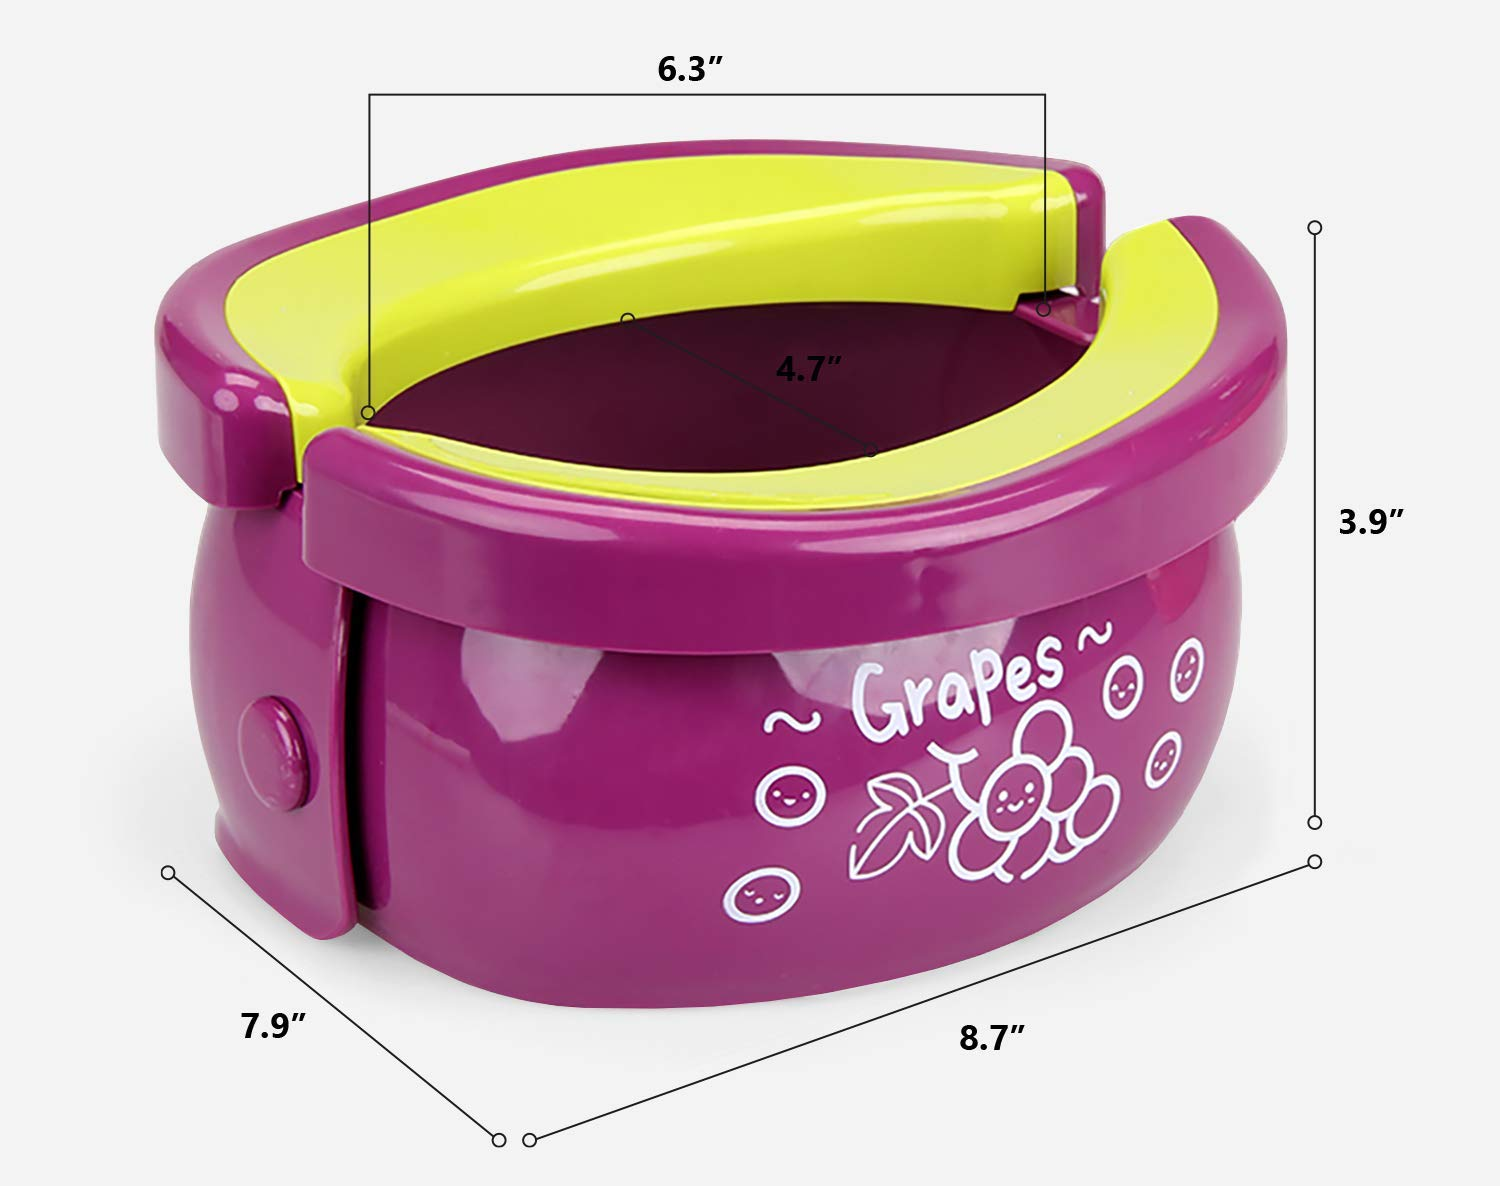 Portable Potty 2-in-1 Travel Toilet Seat & Compact Potty Trainer for Baby, Toddlers & Kids with Splash Guard & Potty Liners (Grape)